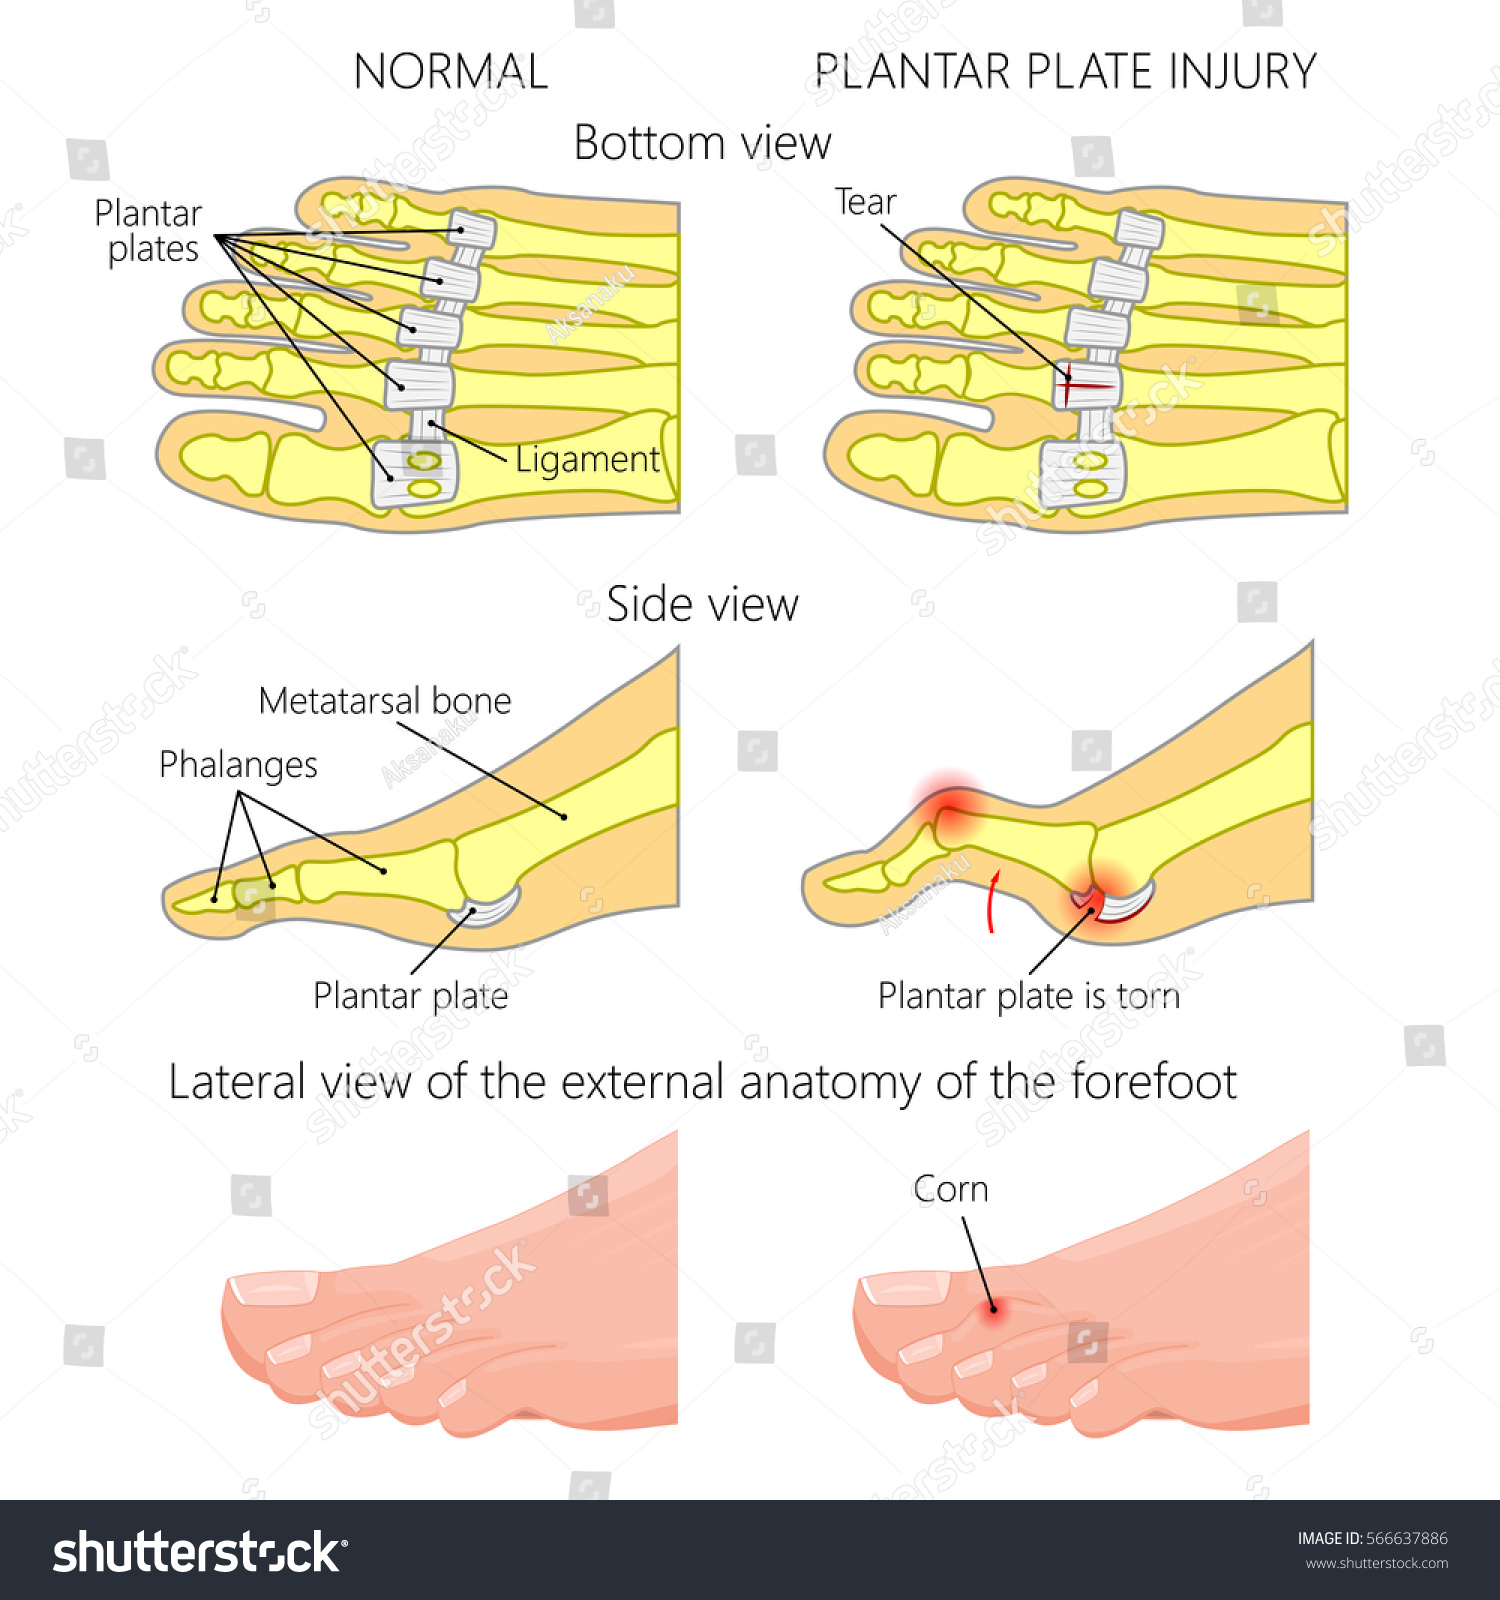 Diagram of plantar plate auto wiring diagram today vector illustration diagram hammer toe plantar stock vector rh shutterstock com plantar plate tear plantar plate tear cpt code publicscrutiny Image collections